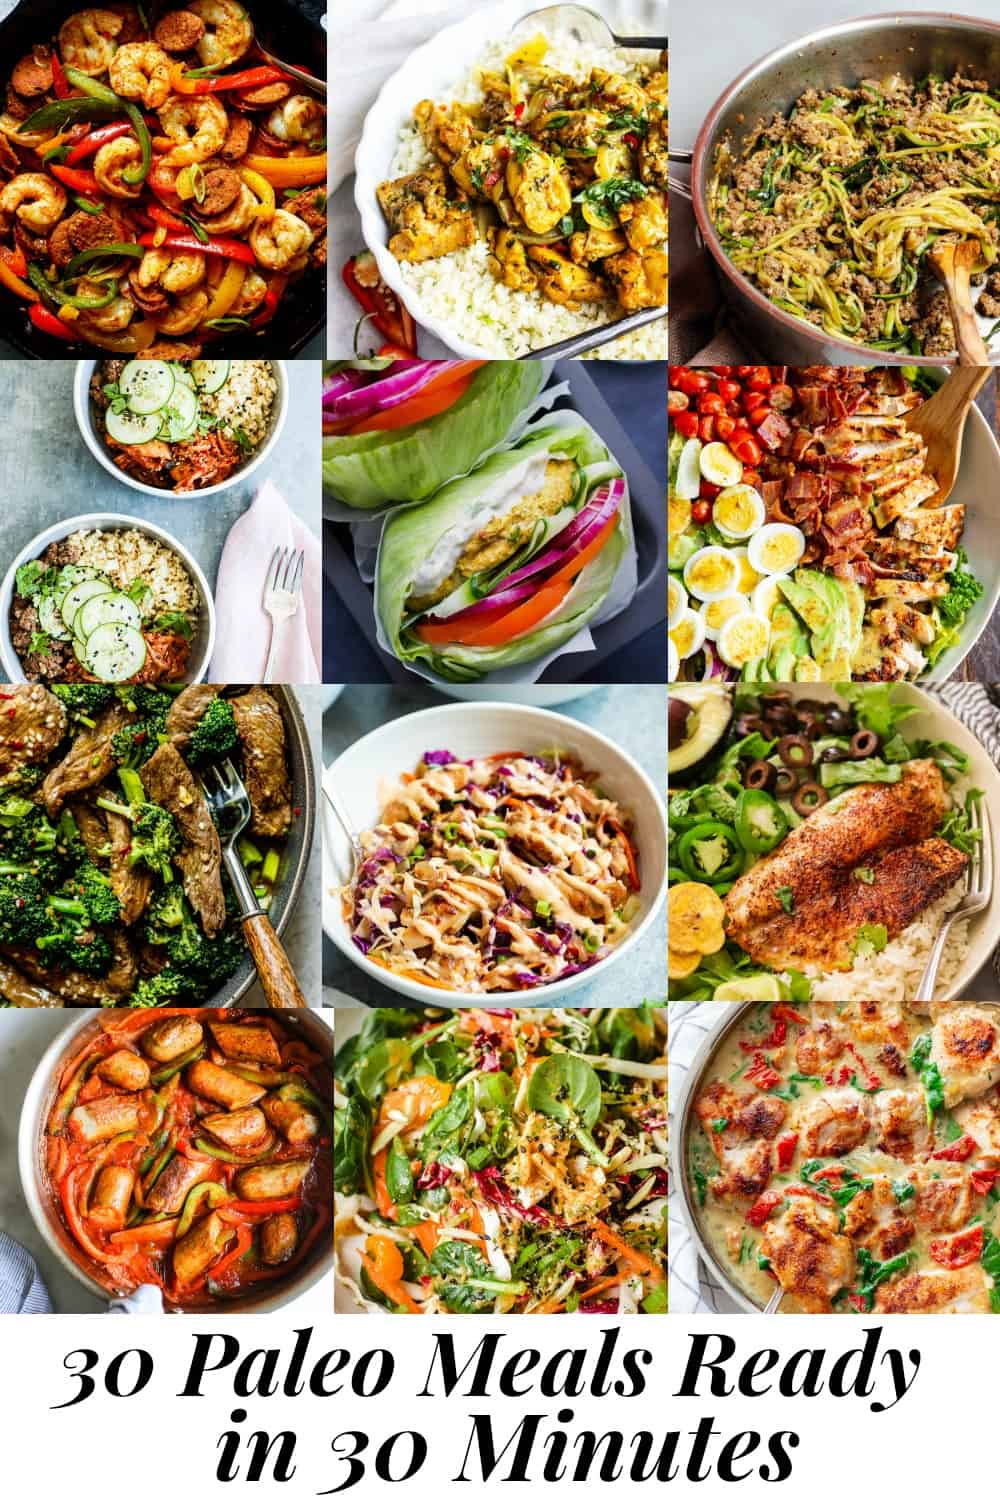 These 30 paleo meals are all ready in 30 minutes or less.  Most are also Whole30 compliant and many are low in carbs + keto friendly.  A variety of cuisines as well as chicken, beef, seafood and fish.  The perfect clean eating healthy recipes for busy days!  #paleo #whole30 #cleaneating